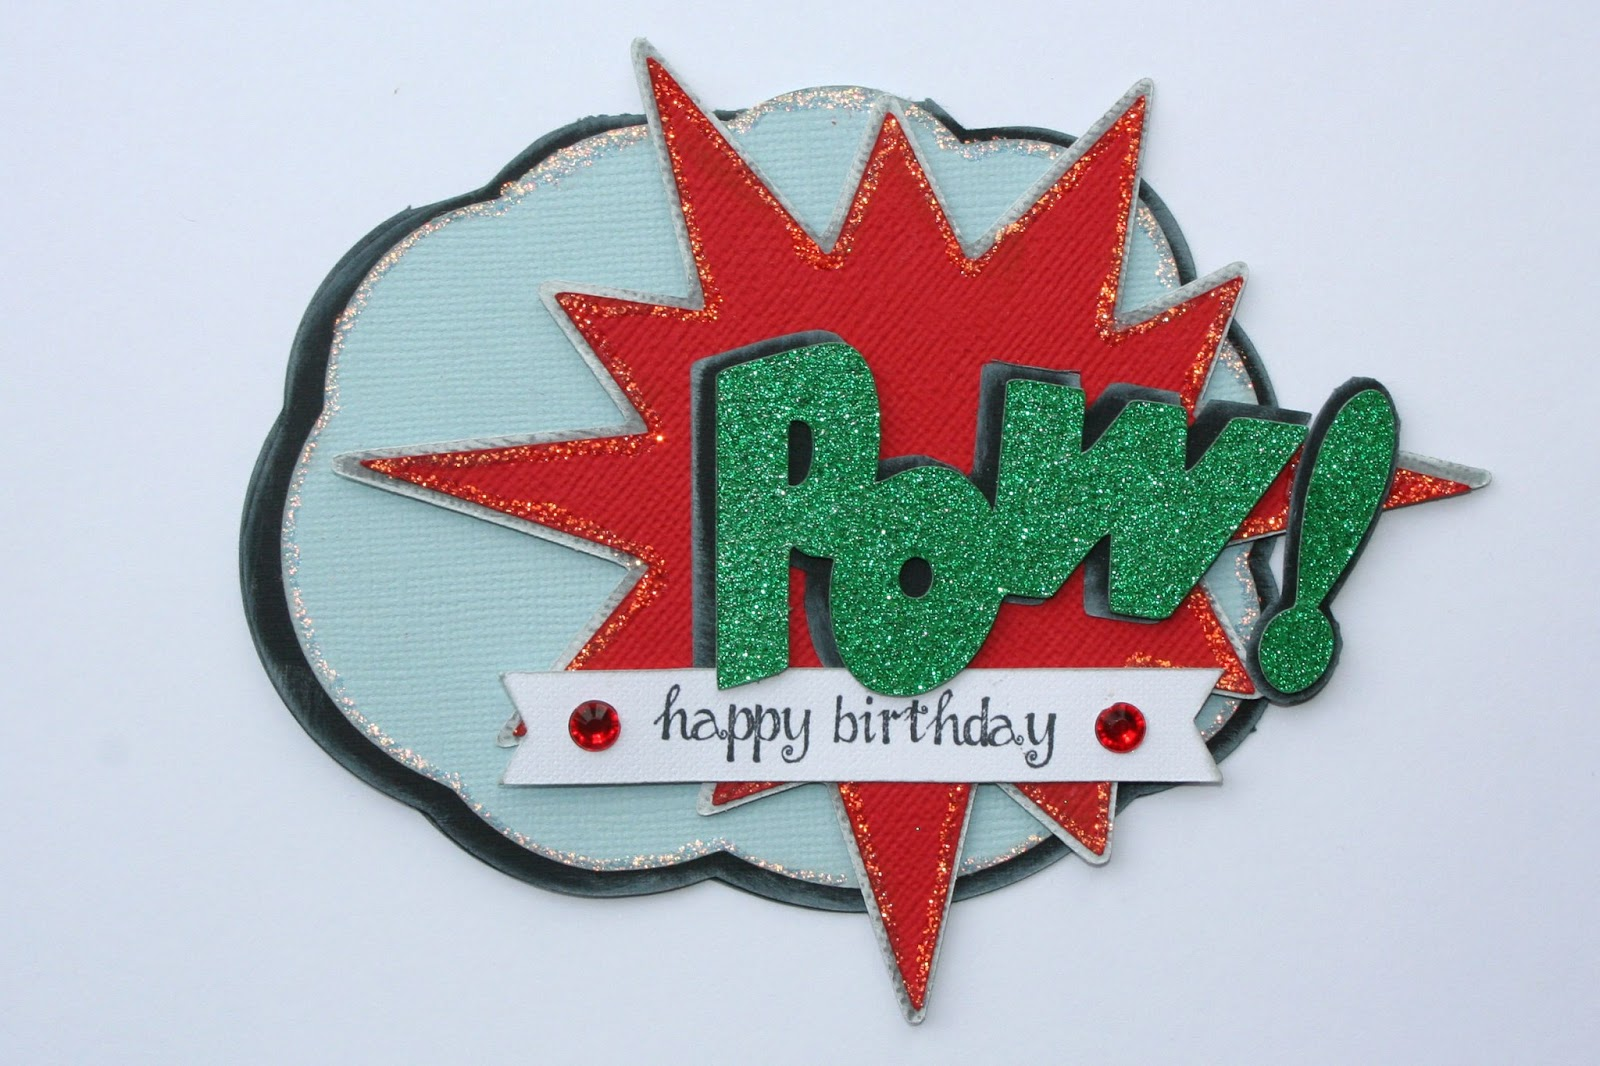 Pazzle Craft Room: Simplyprice: POW! Pazzles Craft Room Card